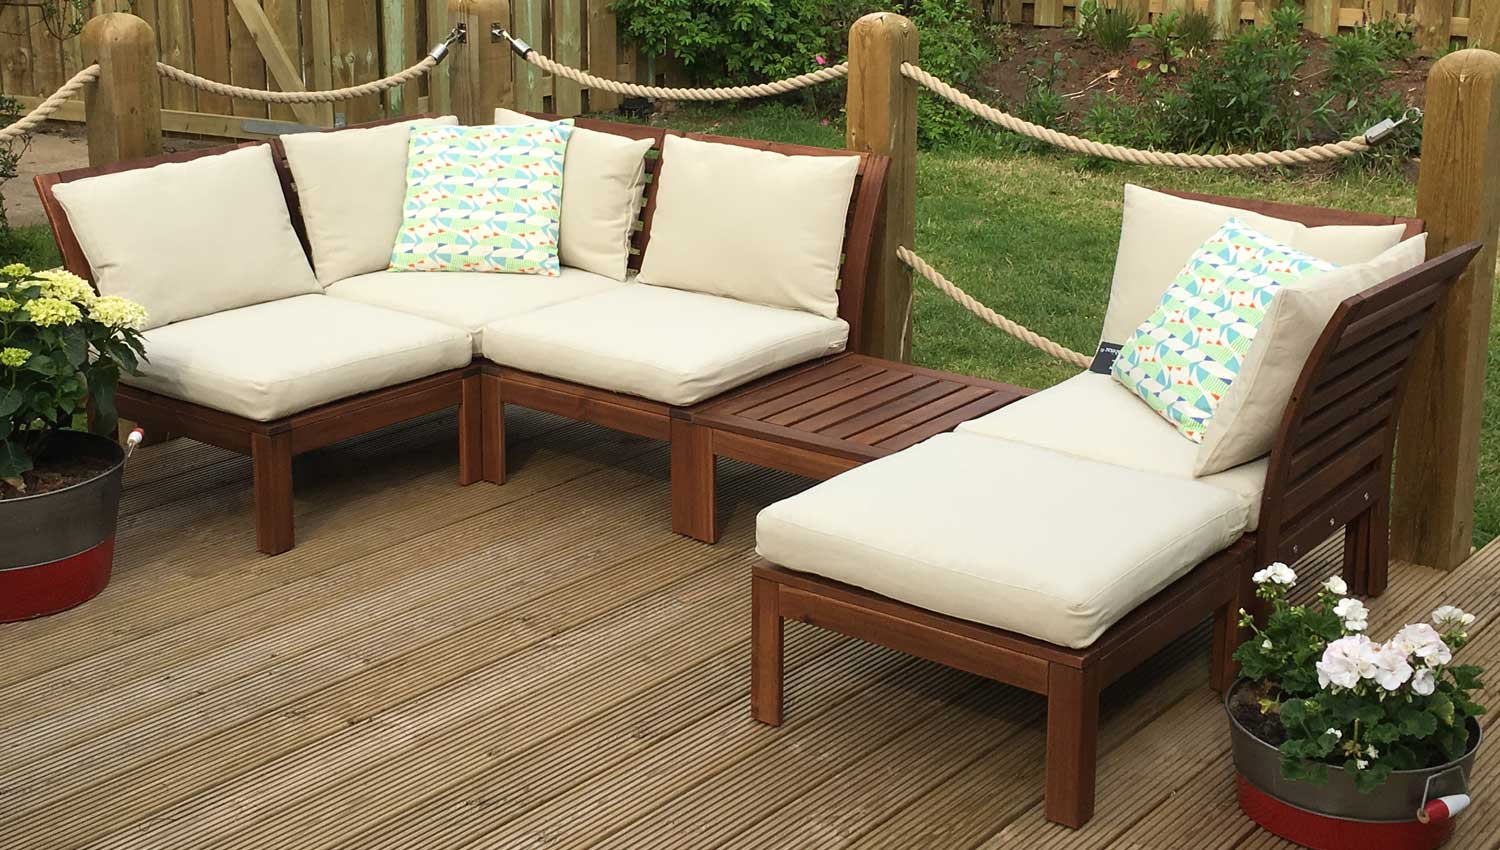 lounge on the outdoor sofas